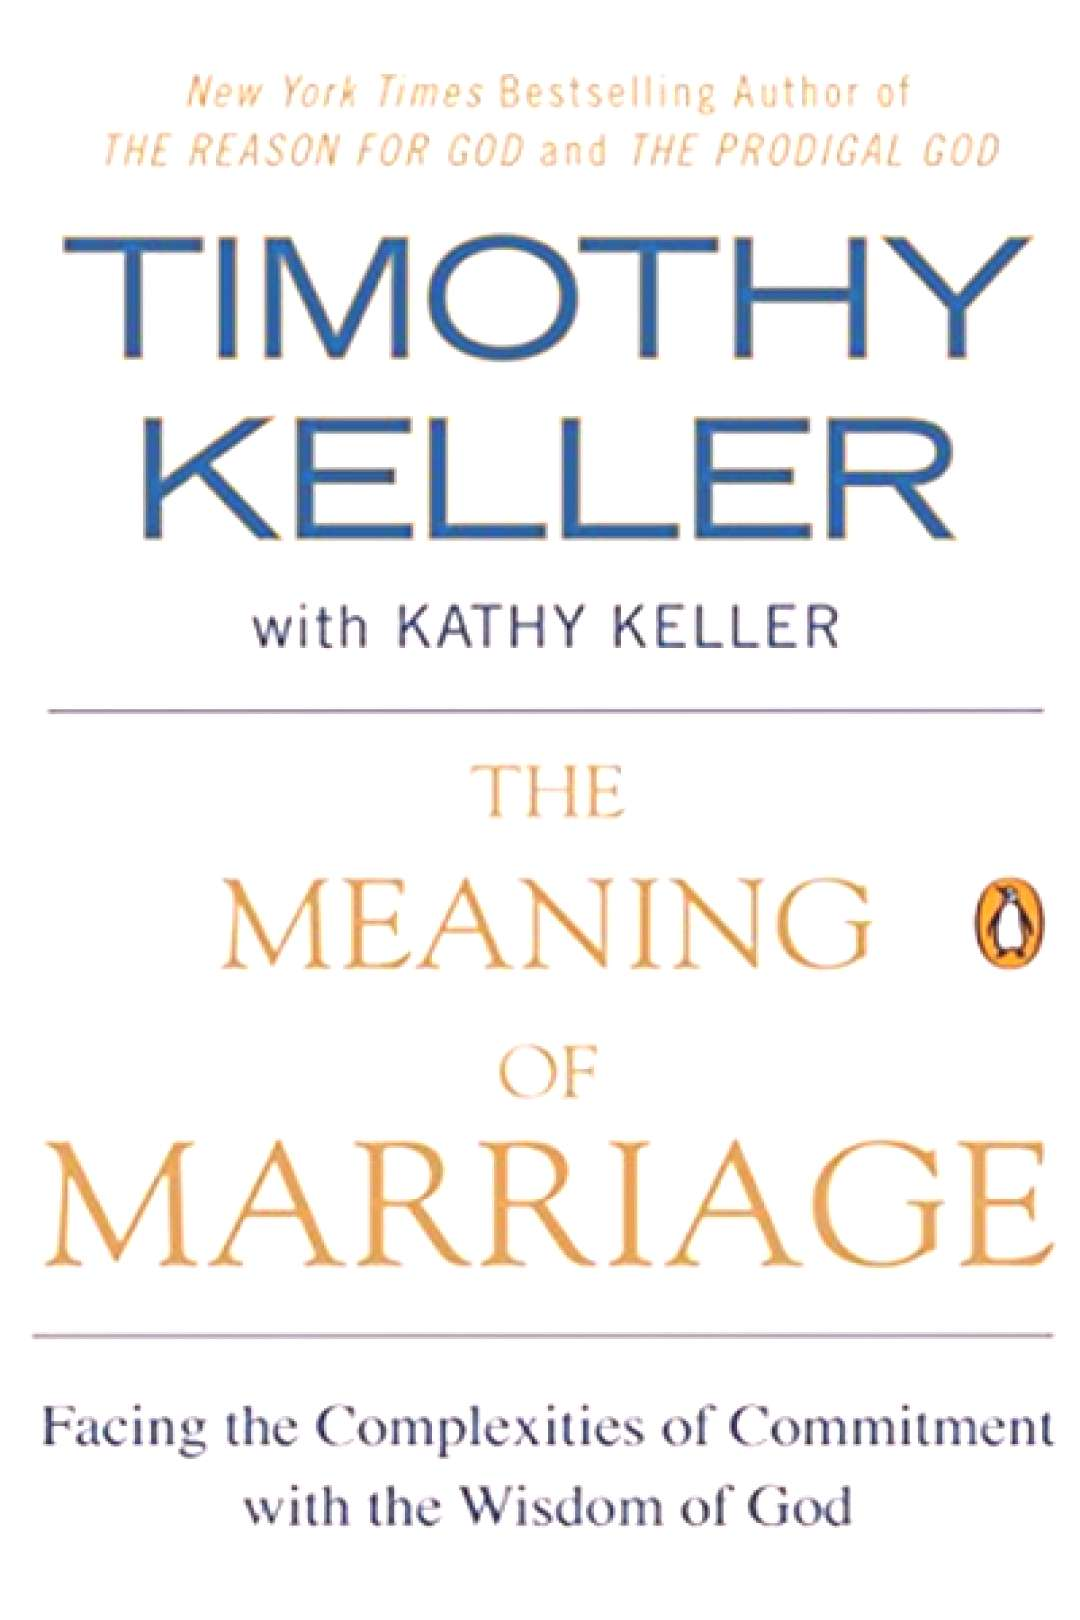 The Meaning of Marriage Facing the Complexities of Commitment with the Wisdom of God by Timothy Ke